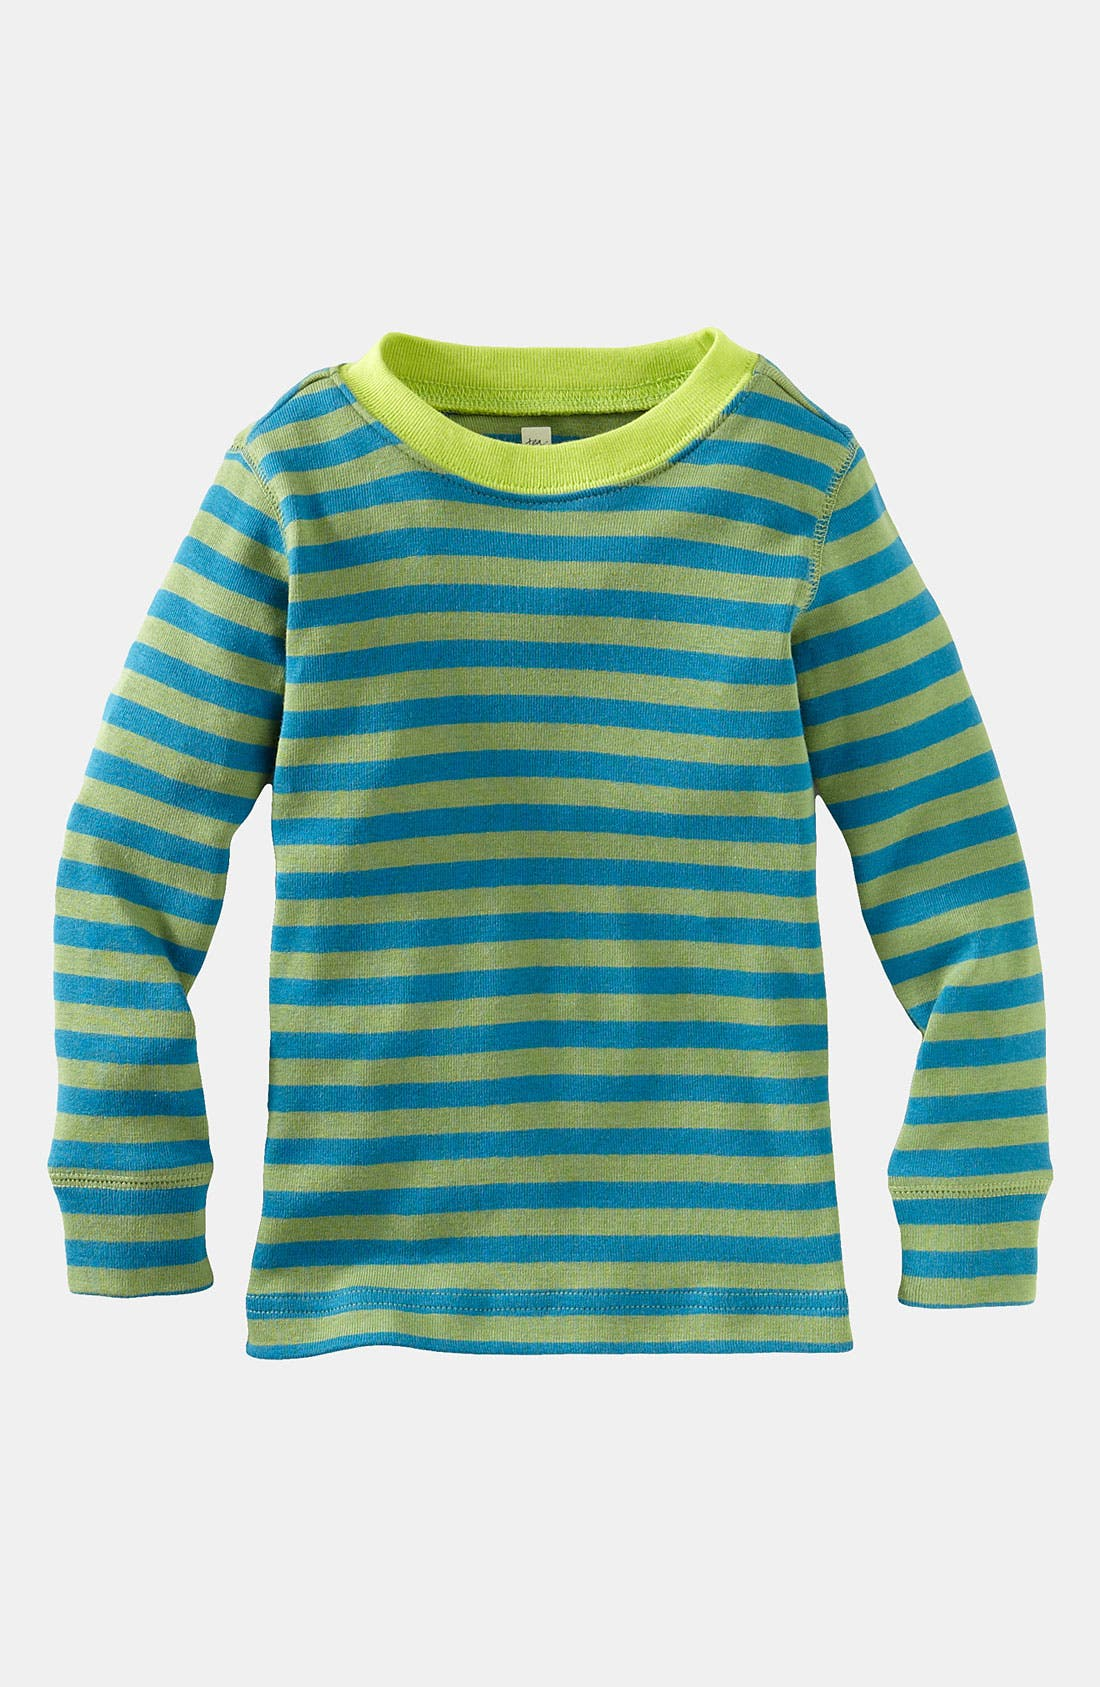 Main Image - Tea Collection Stripe T-Shirt (Toddler)